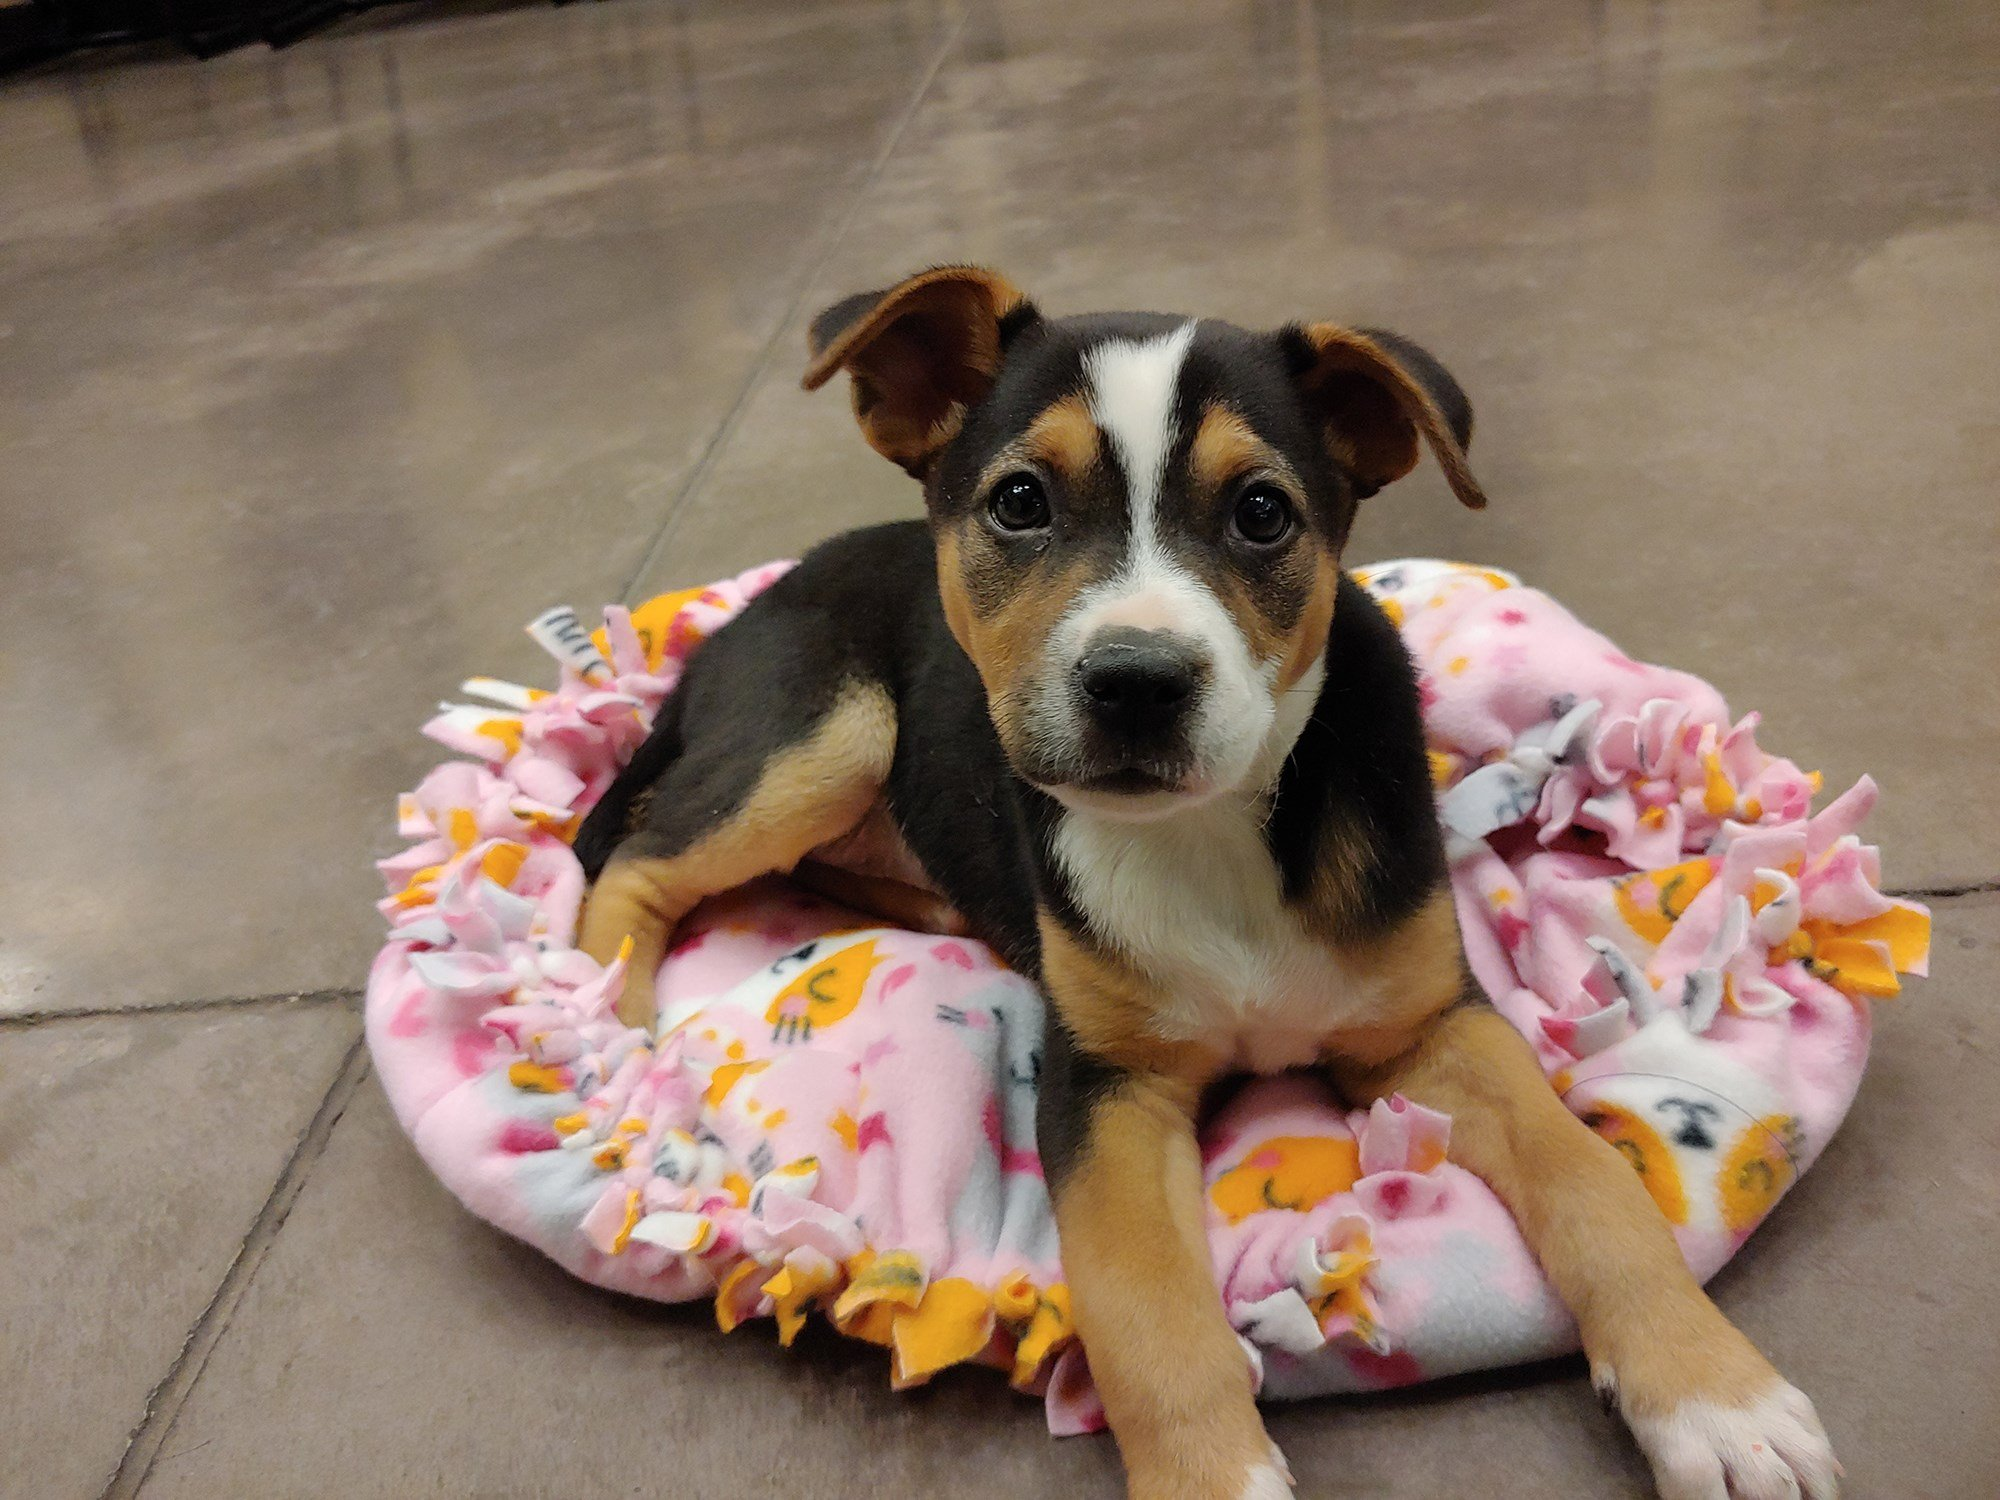 No charges will be filed in the case of the stolen puppy. (Source: Arizona Animal Welfare League)